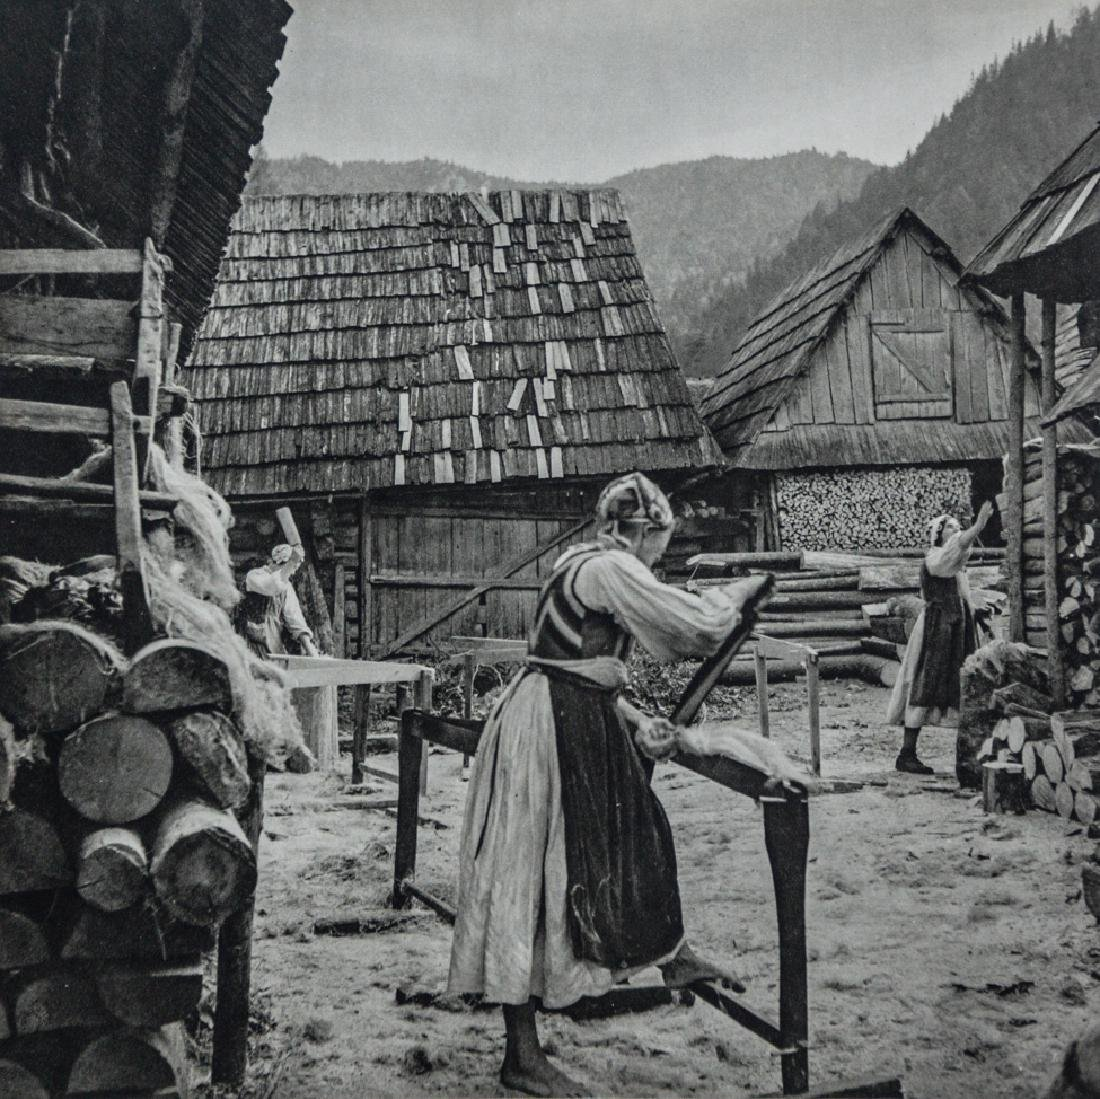 WERNER BISCHOF - Women in Village Preparing Flax